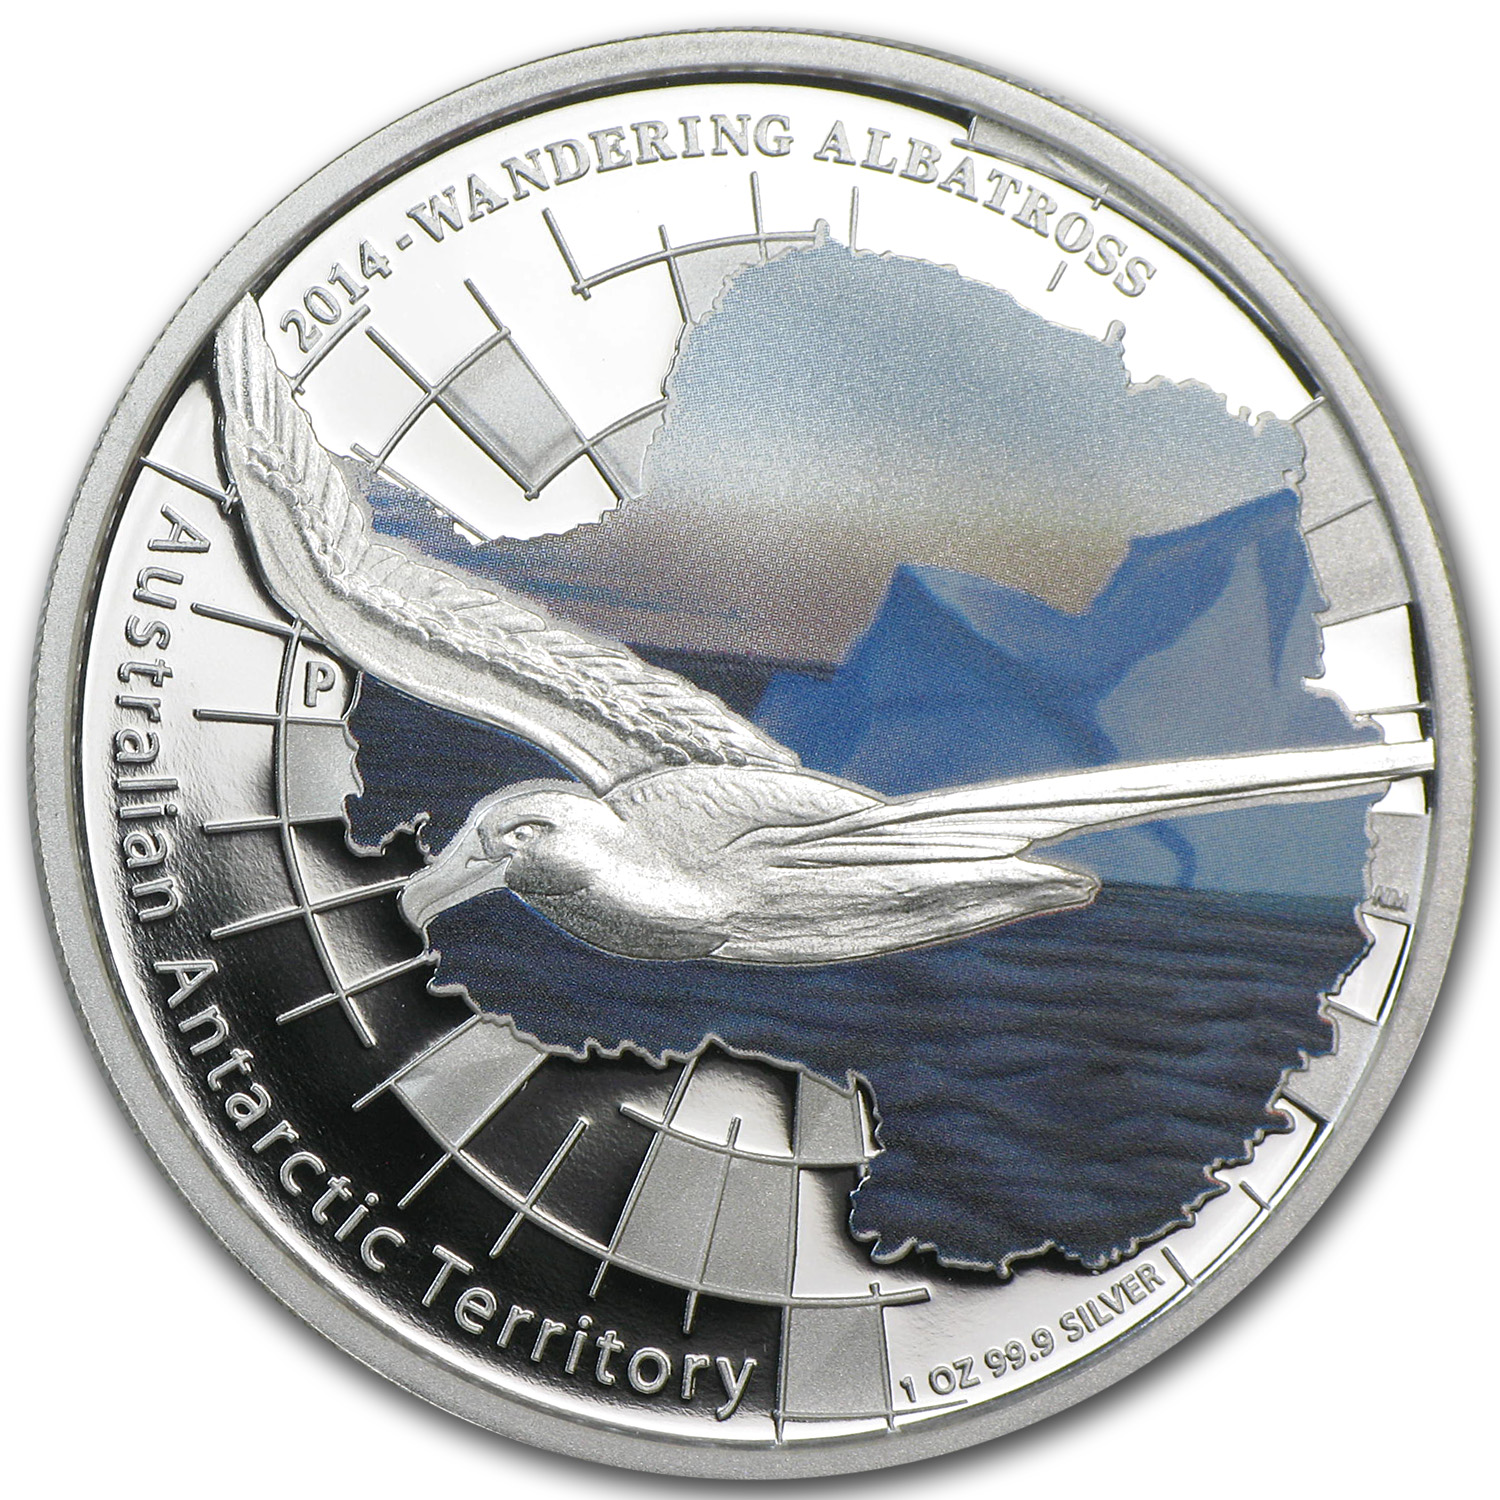 2014 1 oz Proof Silver Wandering Albatross - Australian Antarctic